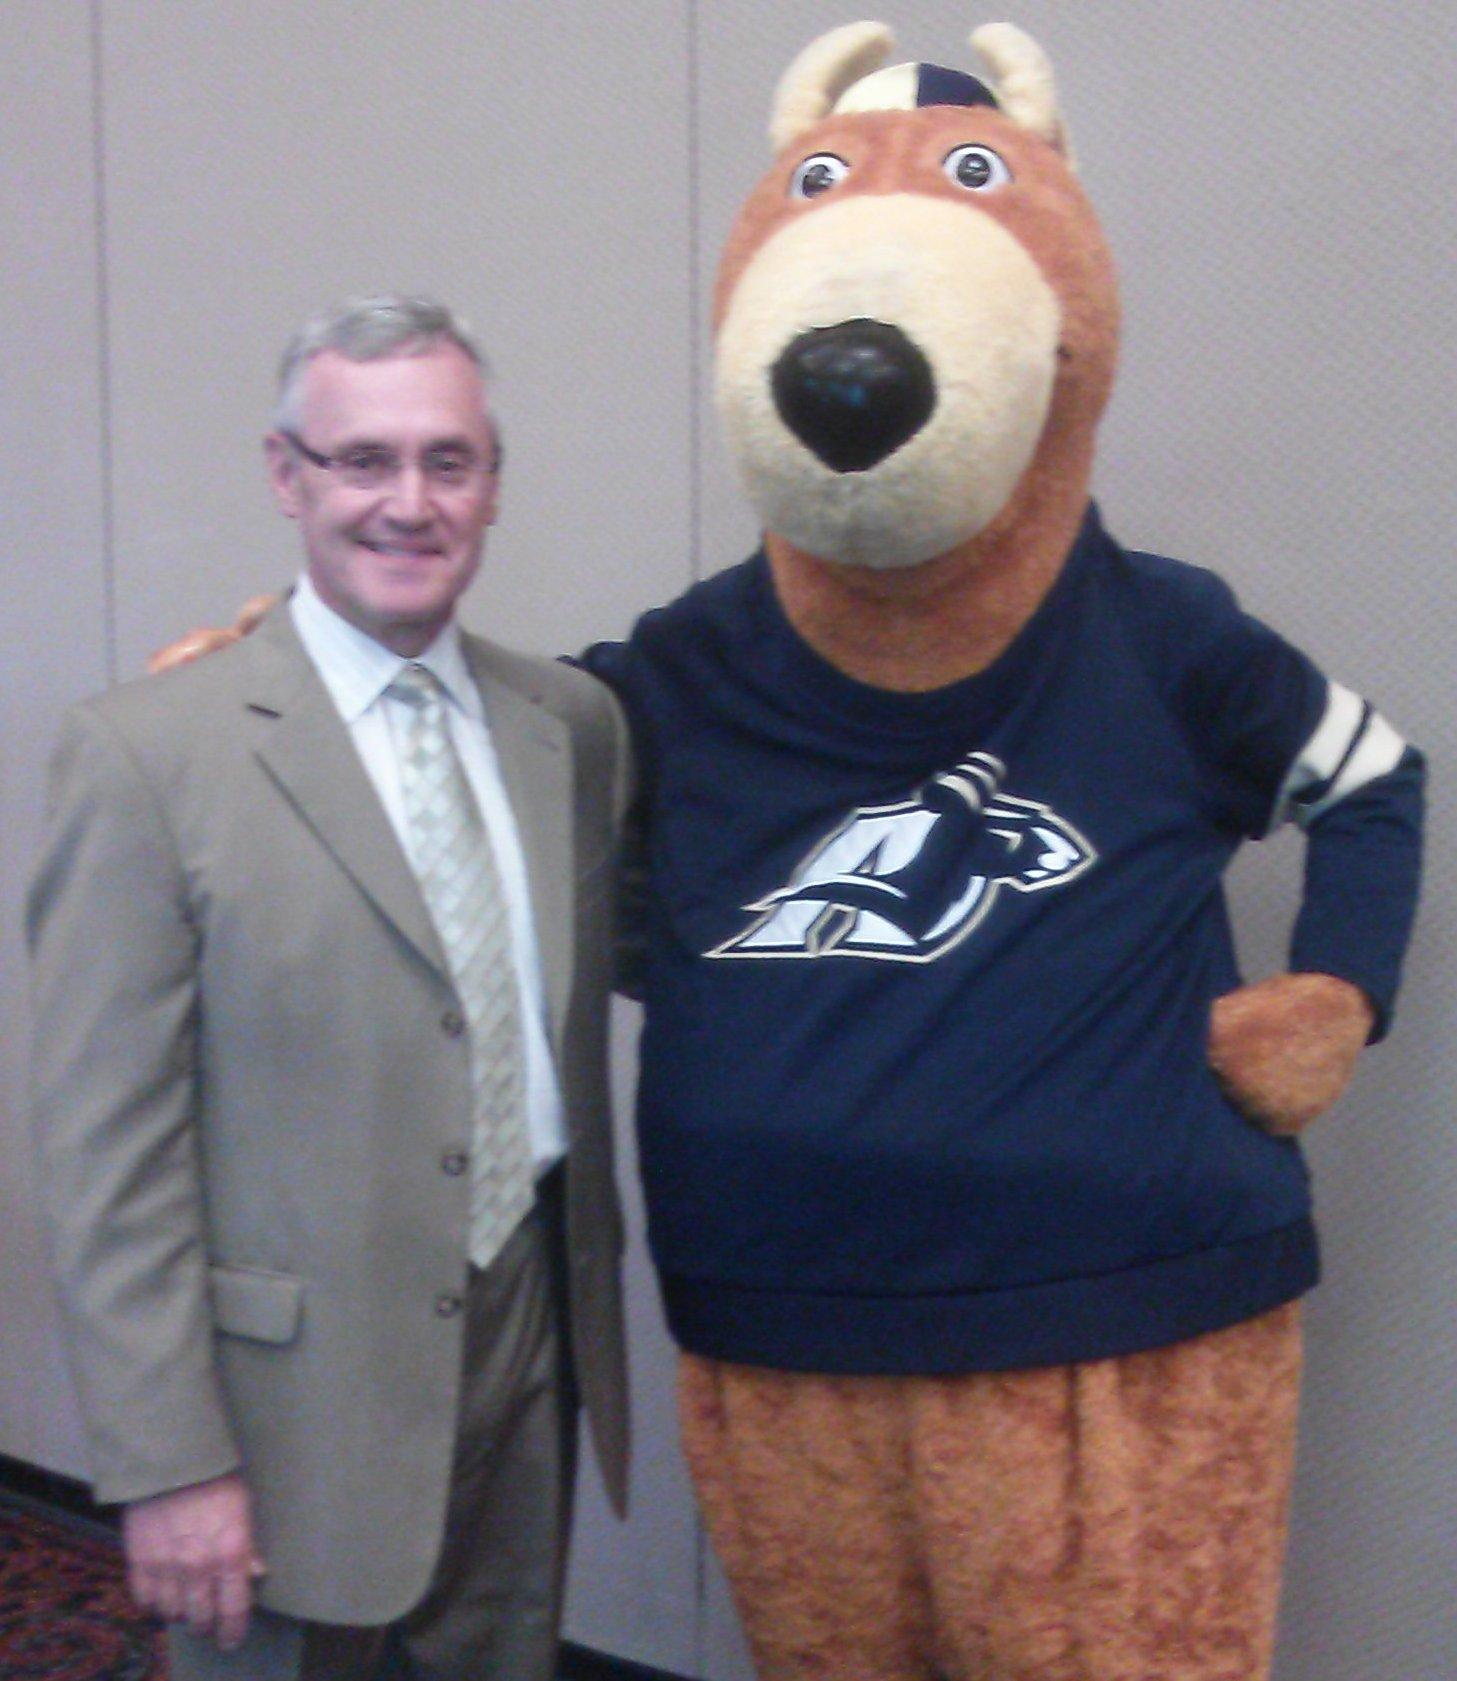 Jim Tressel and Zippy pose for a picture at Tressel's farewell reception.